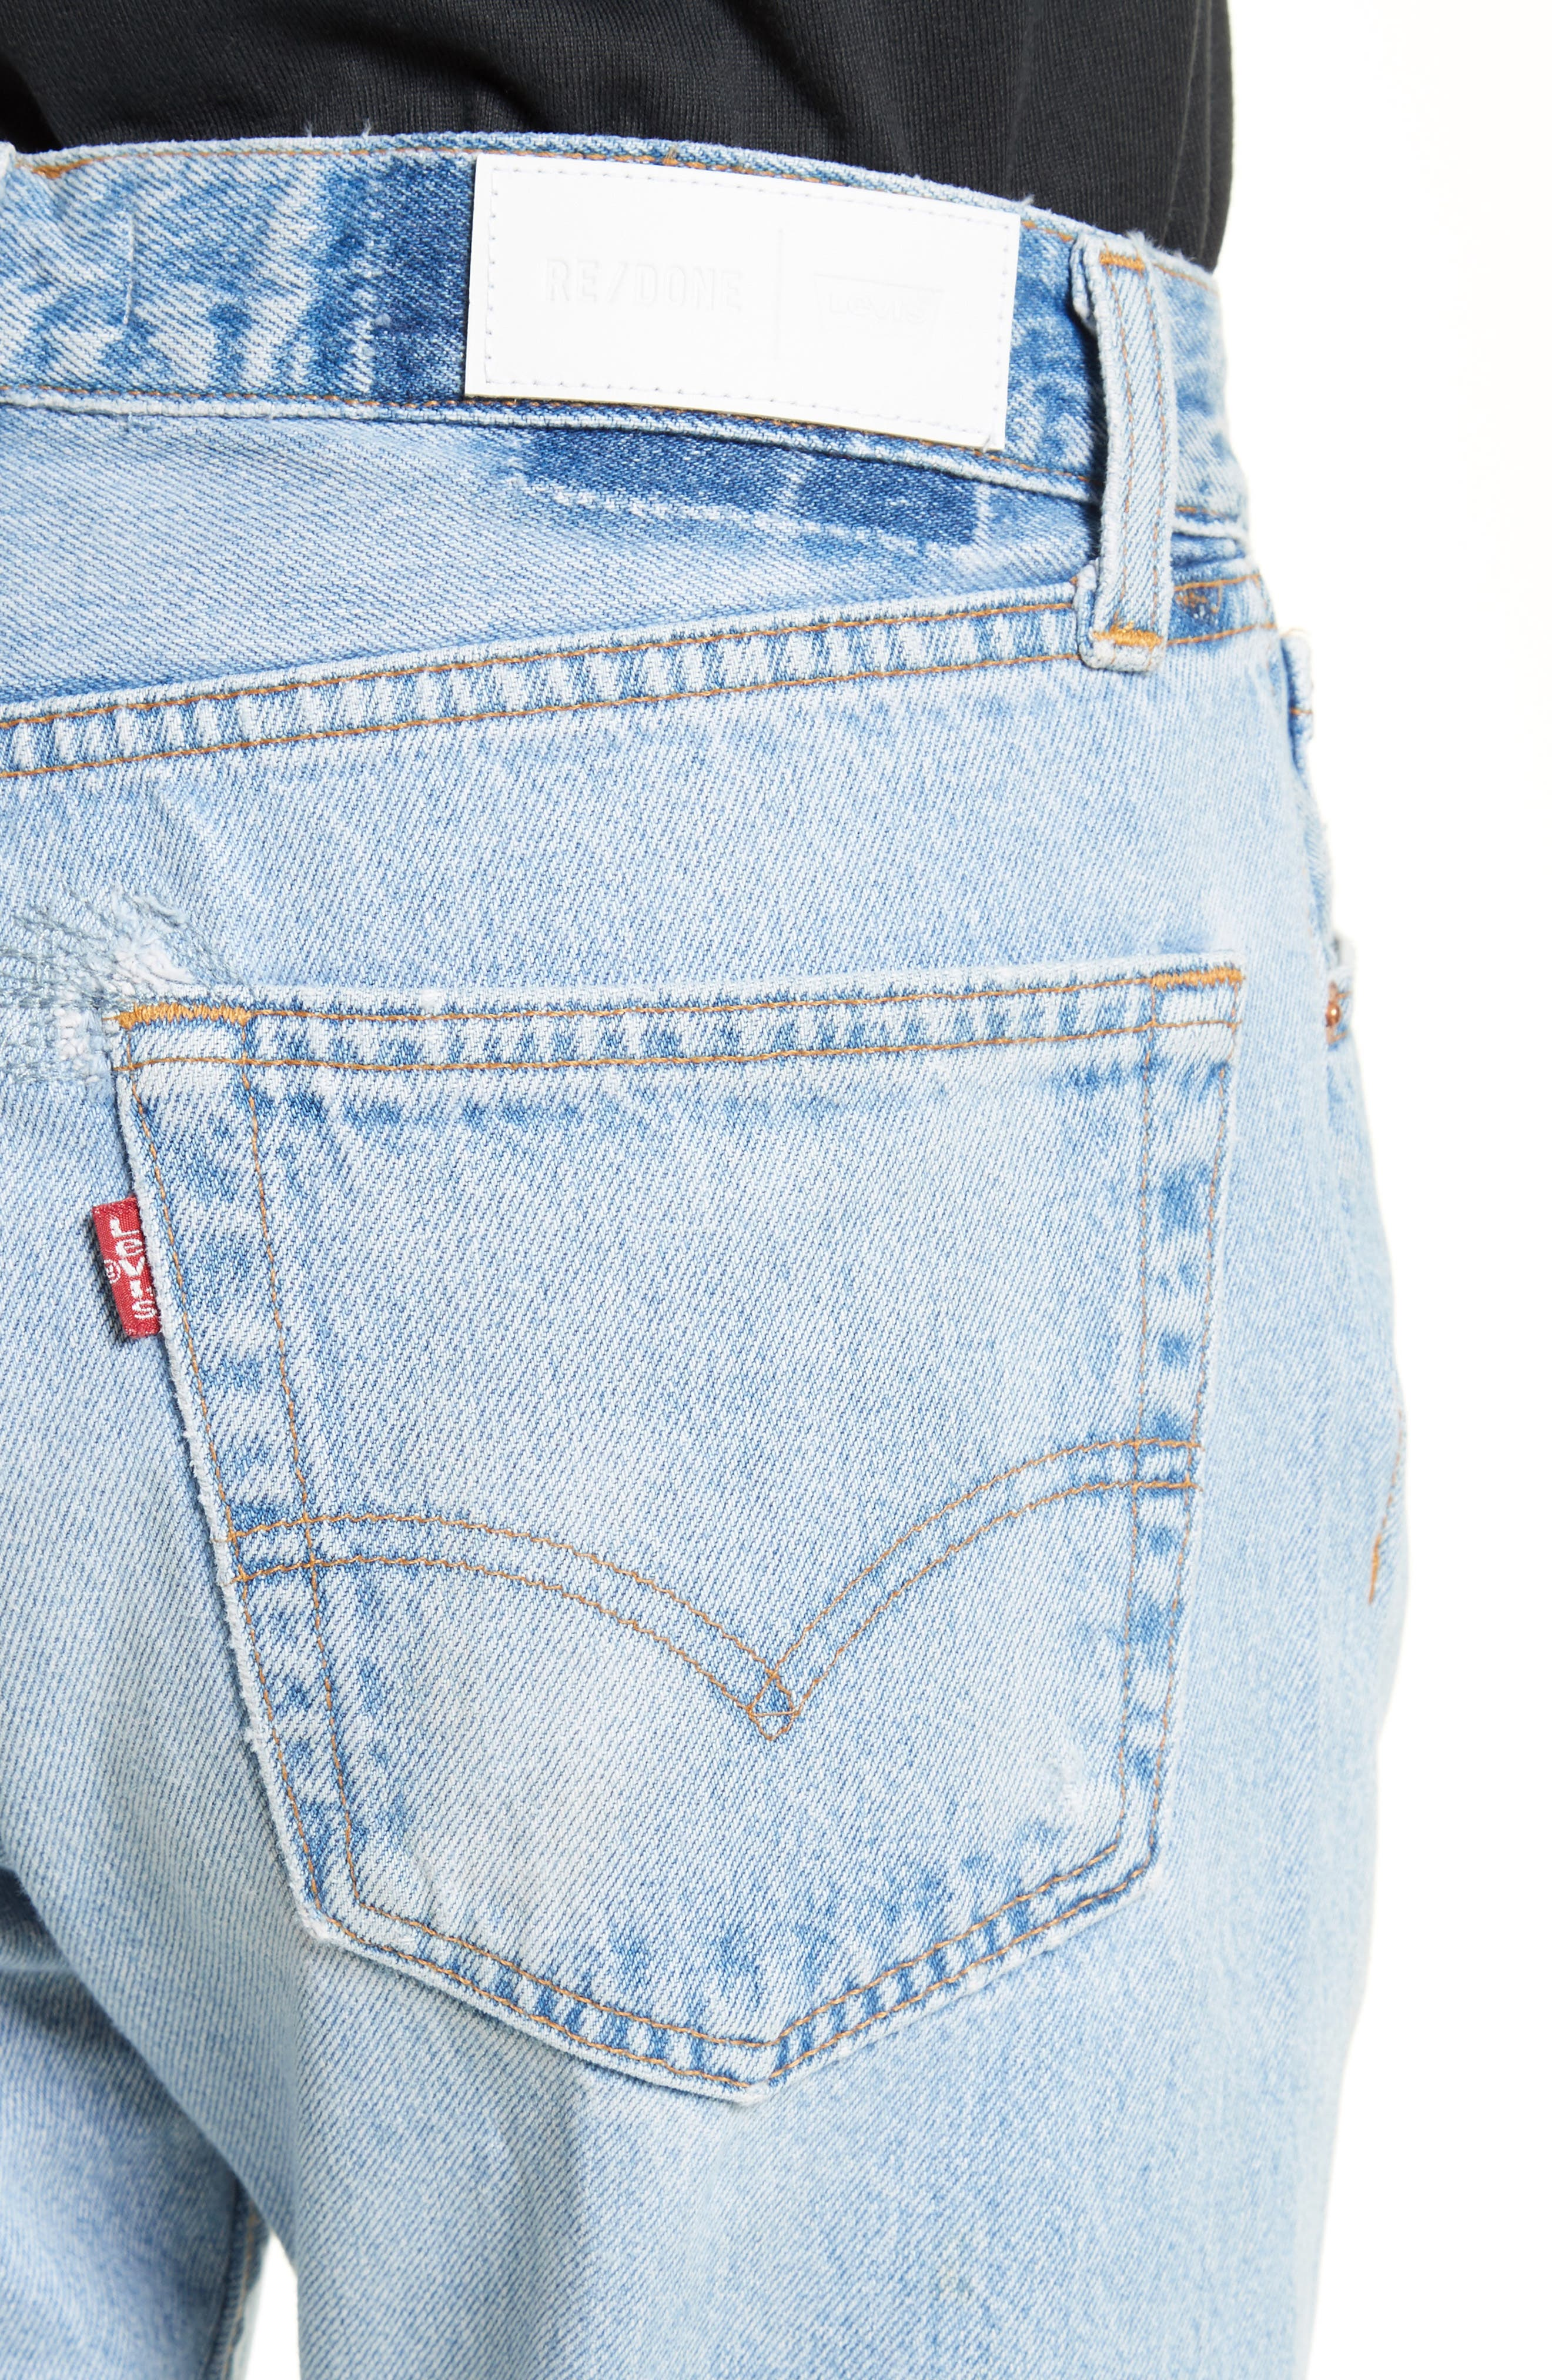 Reconstructed Relaxed Straight Jeans,                             Alternate thumbnail 4, color,                             400